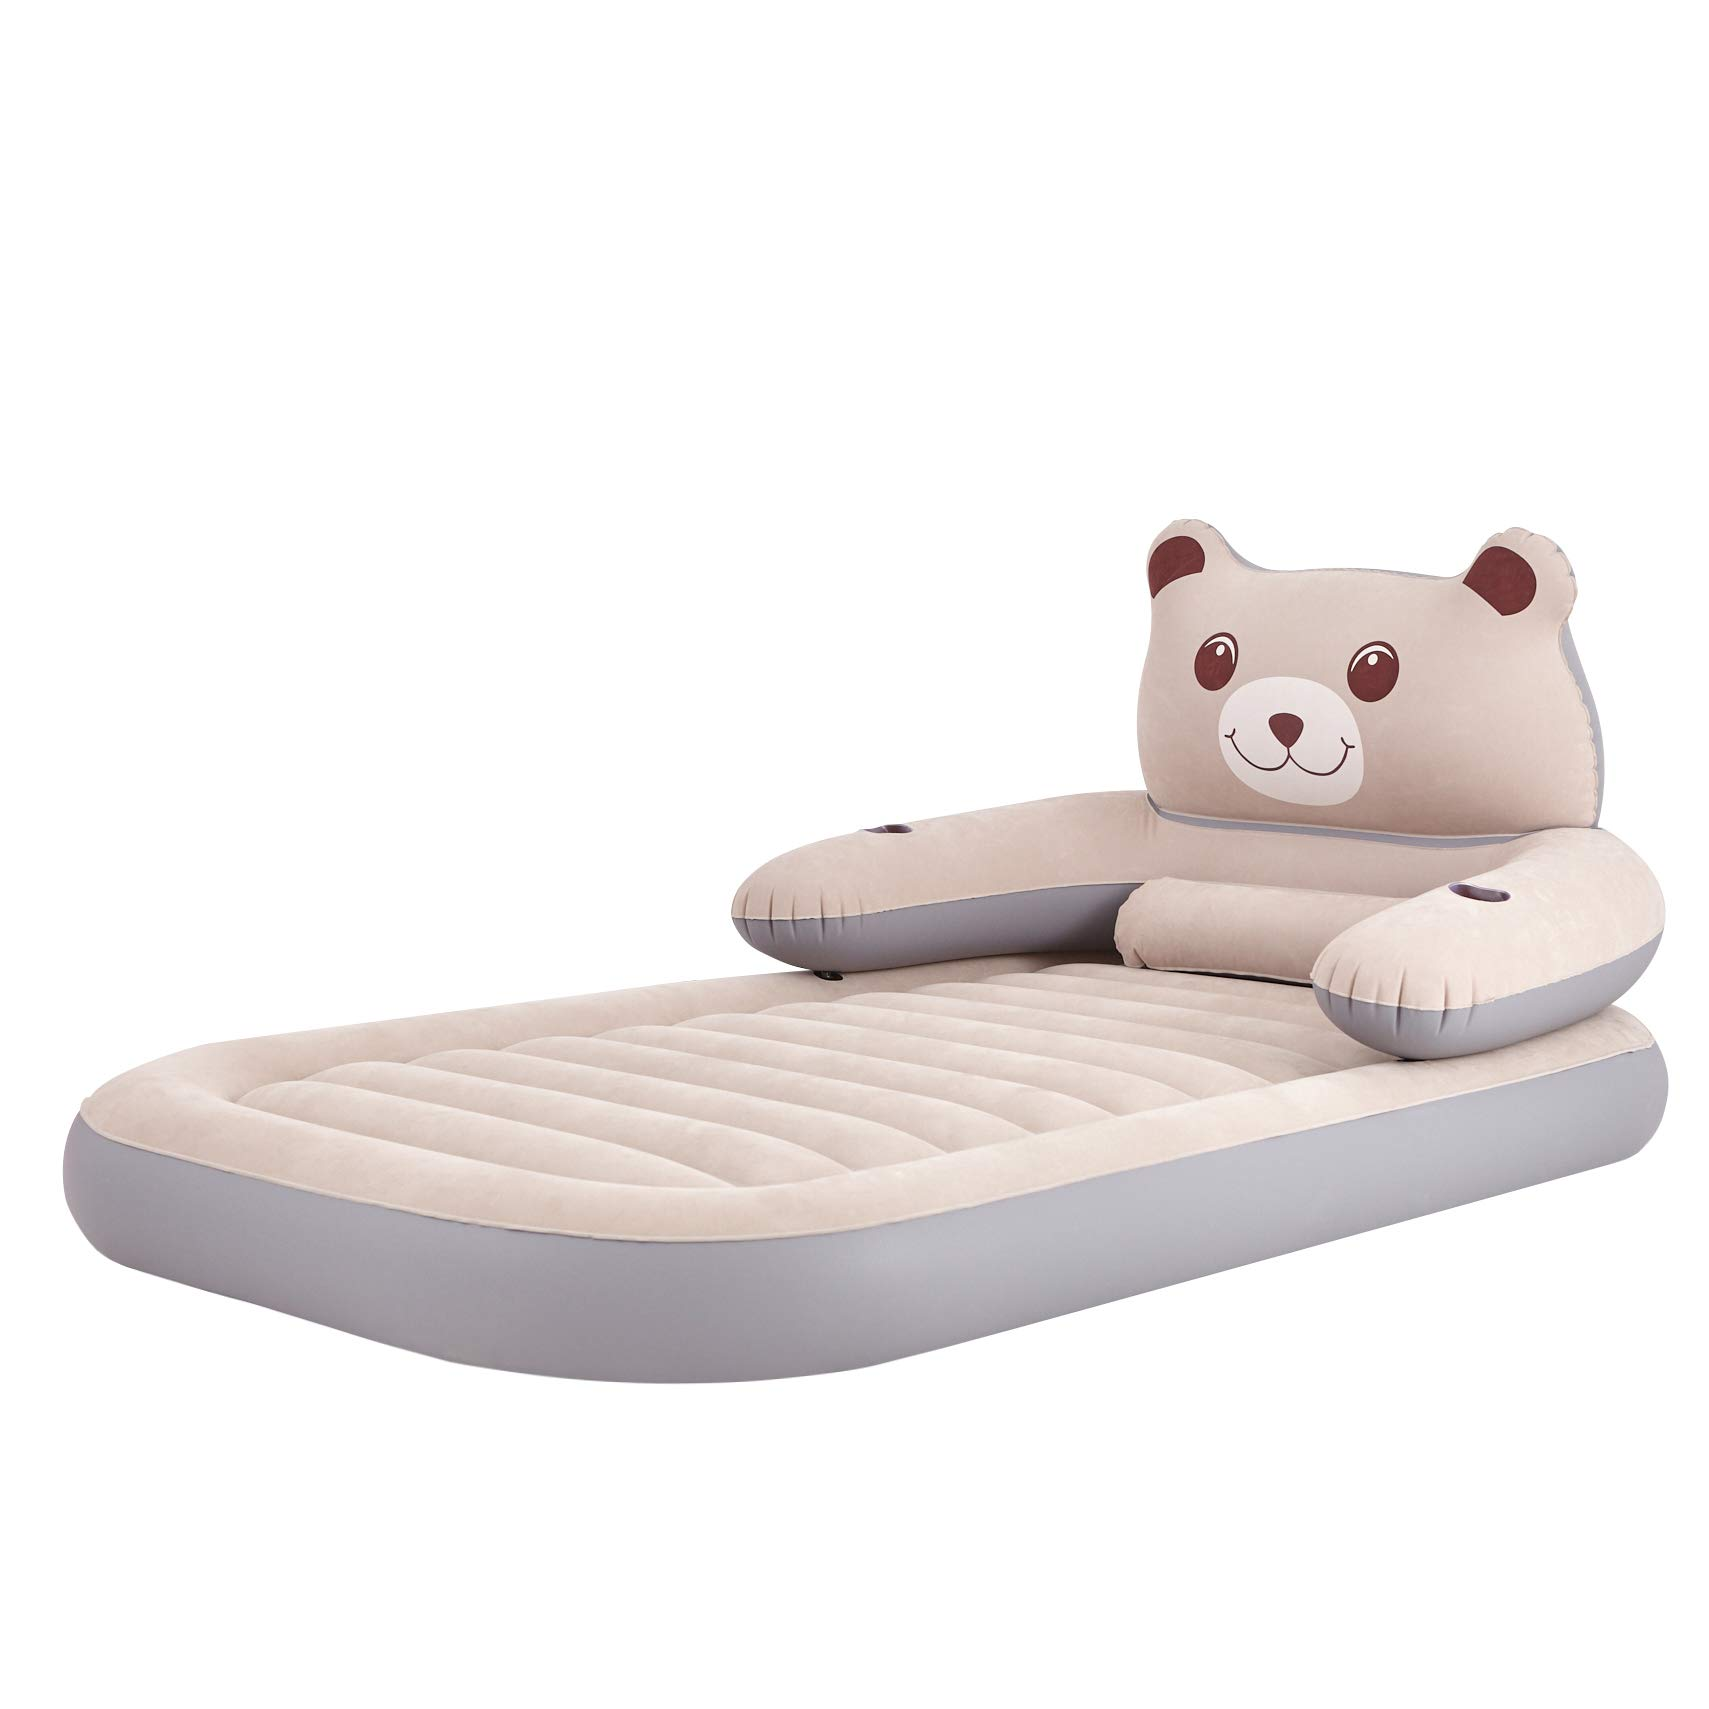 WeTong Twin Size Air Mattress, Inflatable Toddler Travel Bed Firm